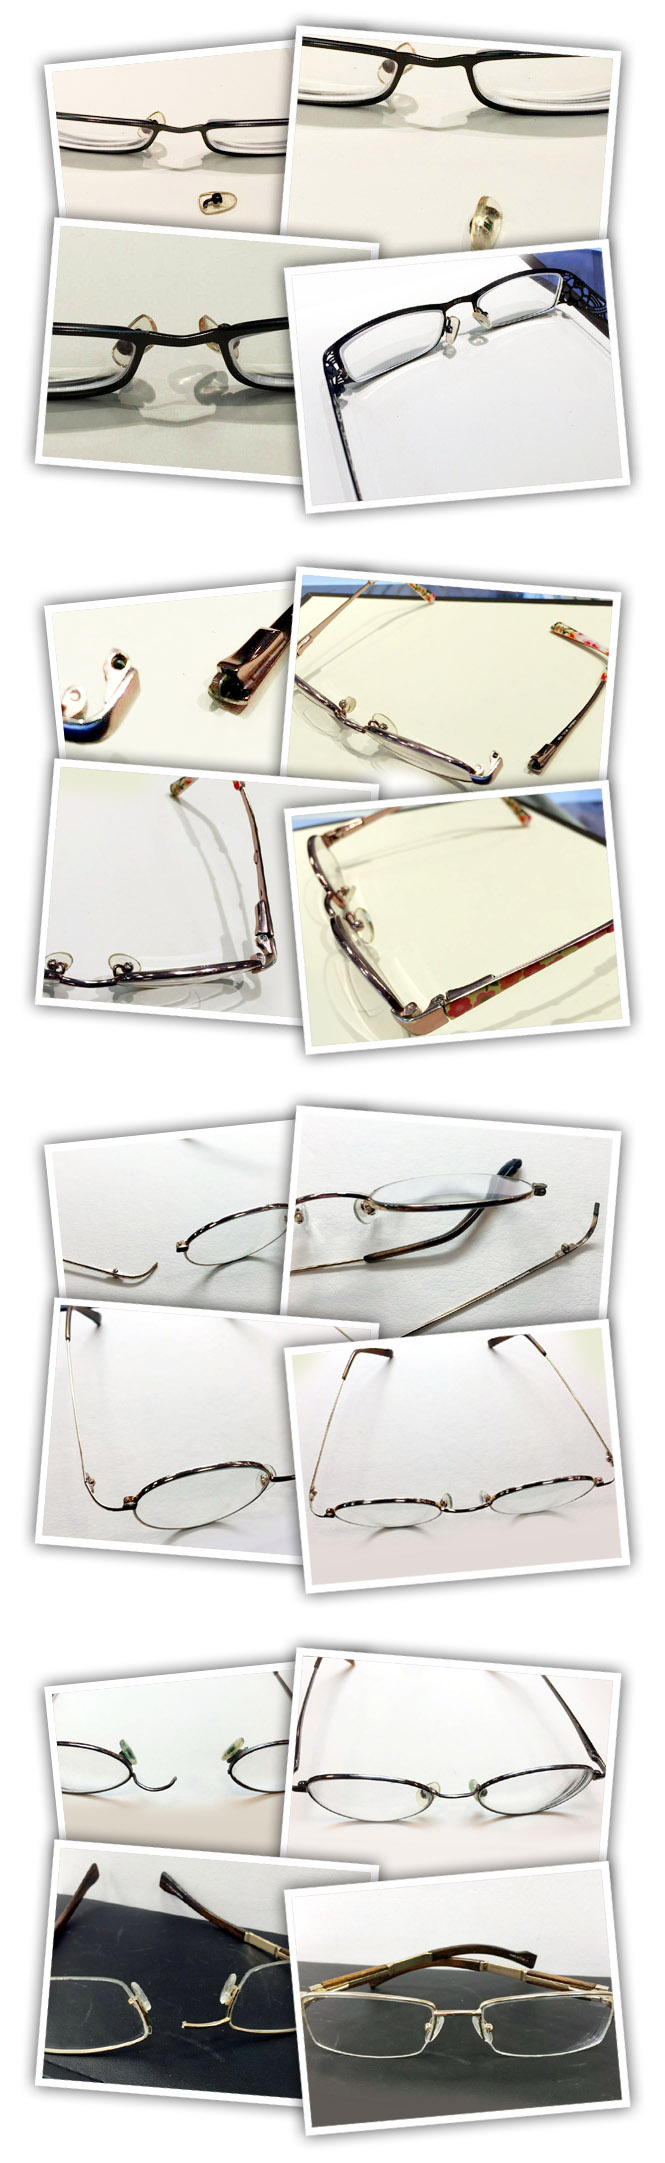 Eyeglass Frame Repair Fairfax Va : Fairfax Eyeglass frame repair, Eyeglass frame repair in ...